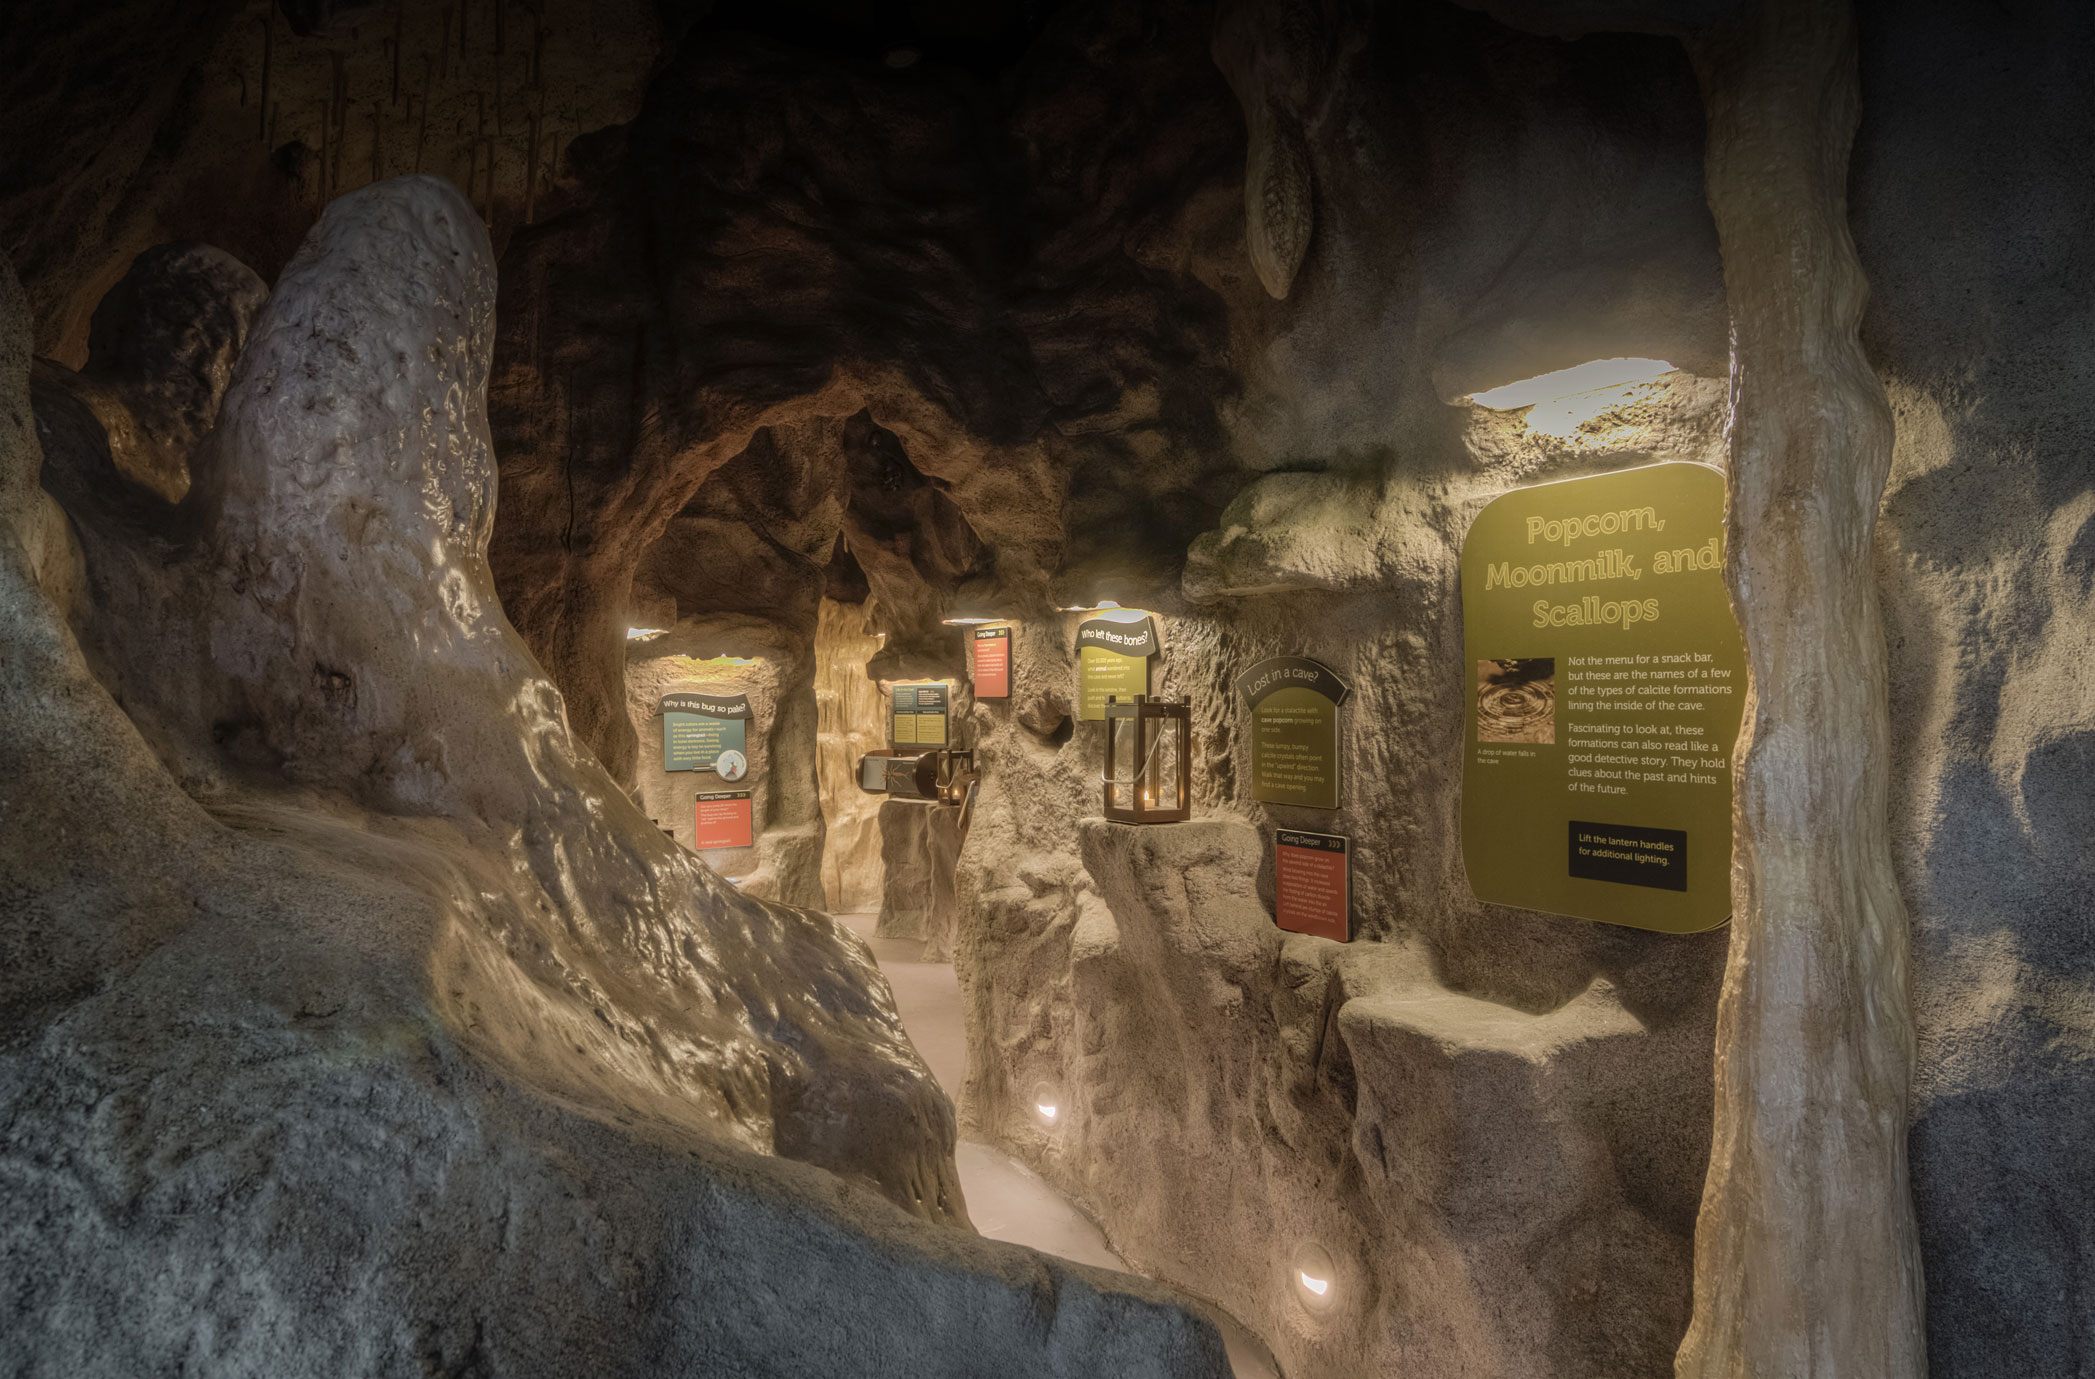 Modeled cave with exhibits inside